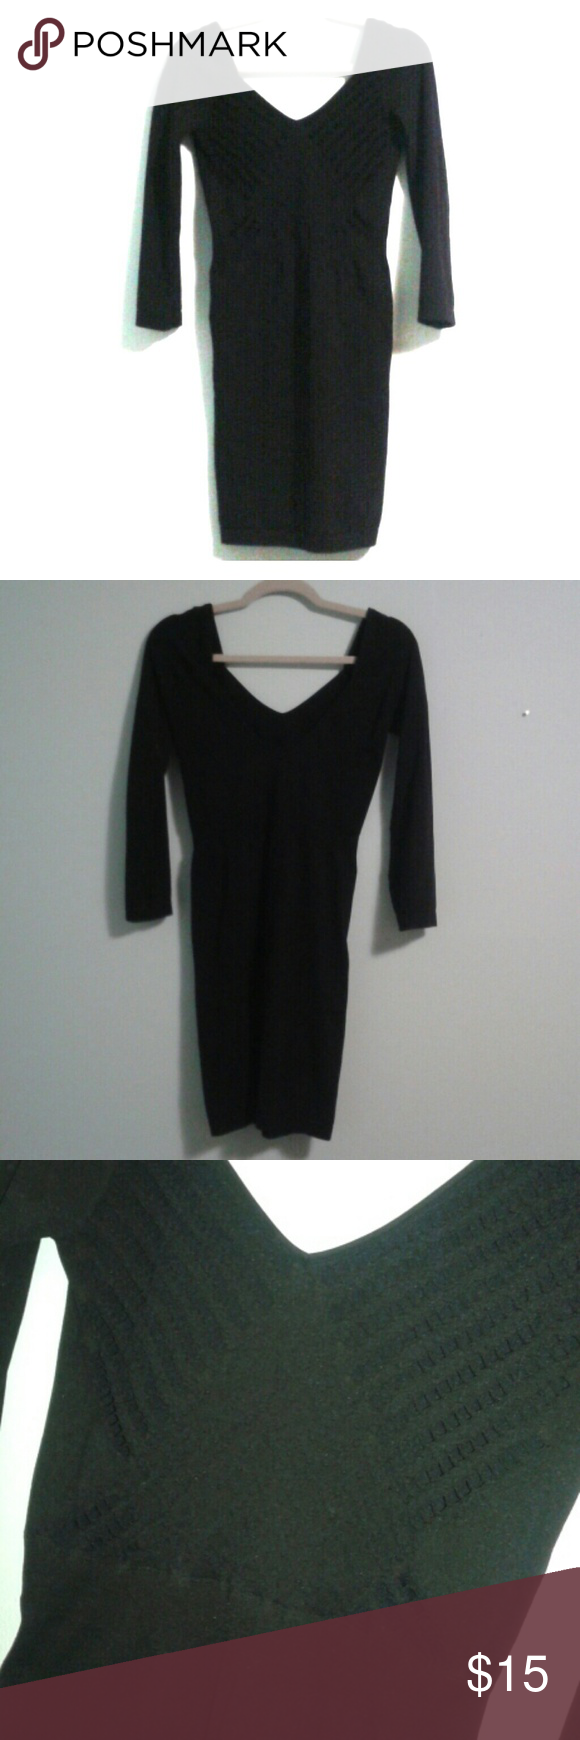 Tight black dress tight black dress with design on front long